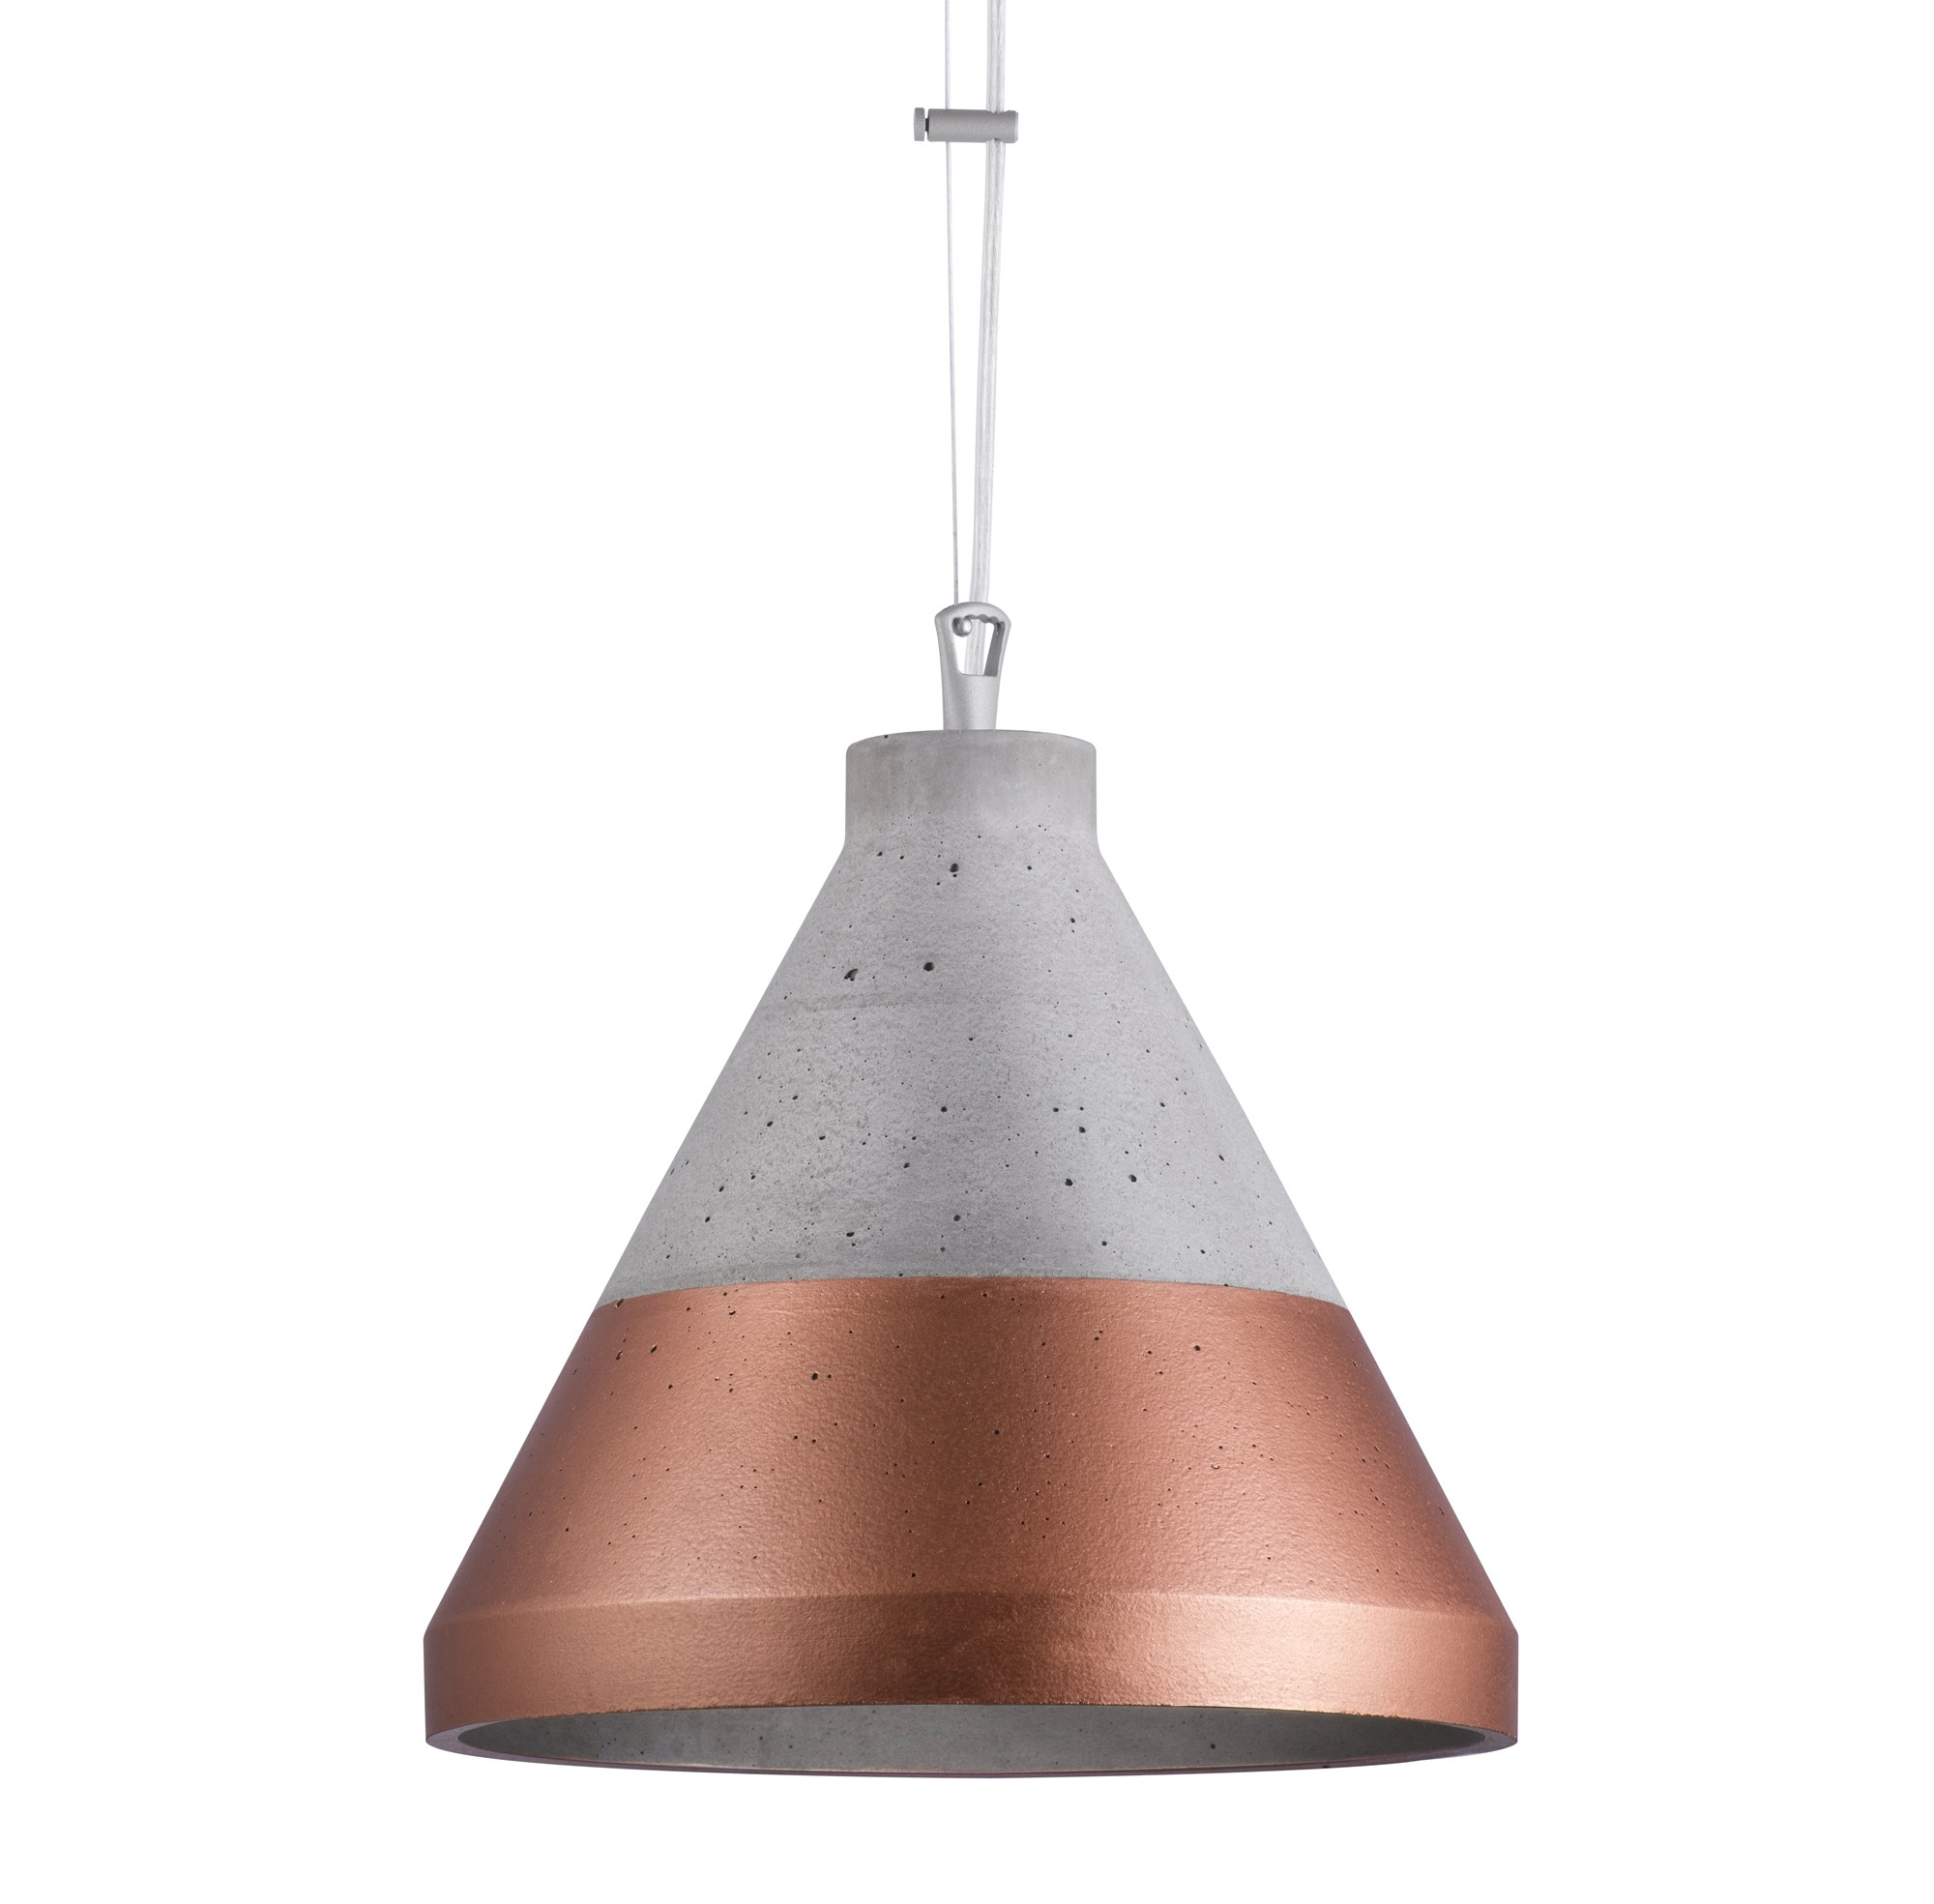 cement plug and use concrete plush calmly pendant garota ylighting ga in to plus outdoor warnaa light swish